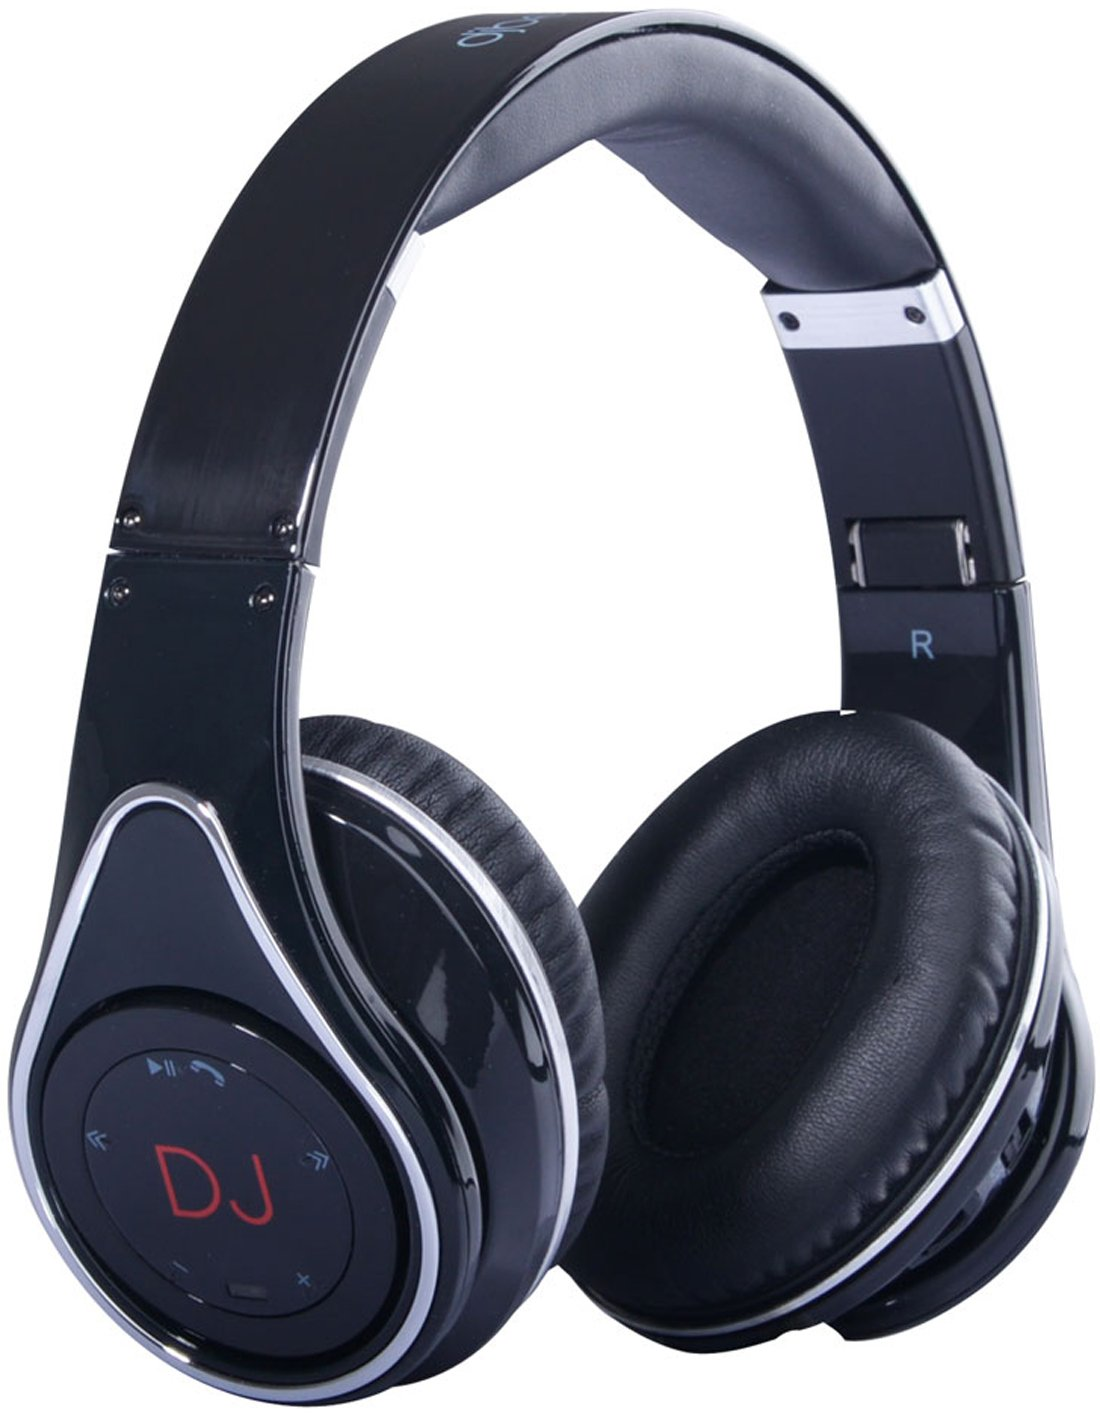 DJBeats by HiQ Stereo Wireless Headphones Noise Cancelling with Music Streaming and Hands-free Calling by HiQ